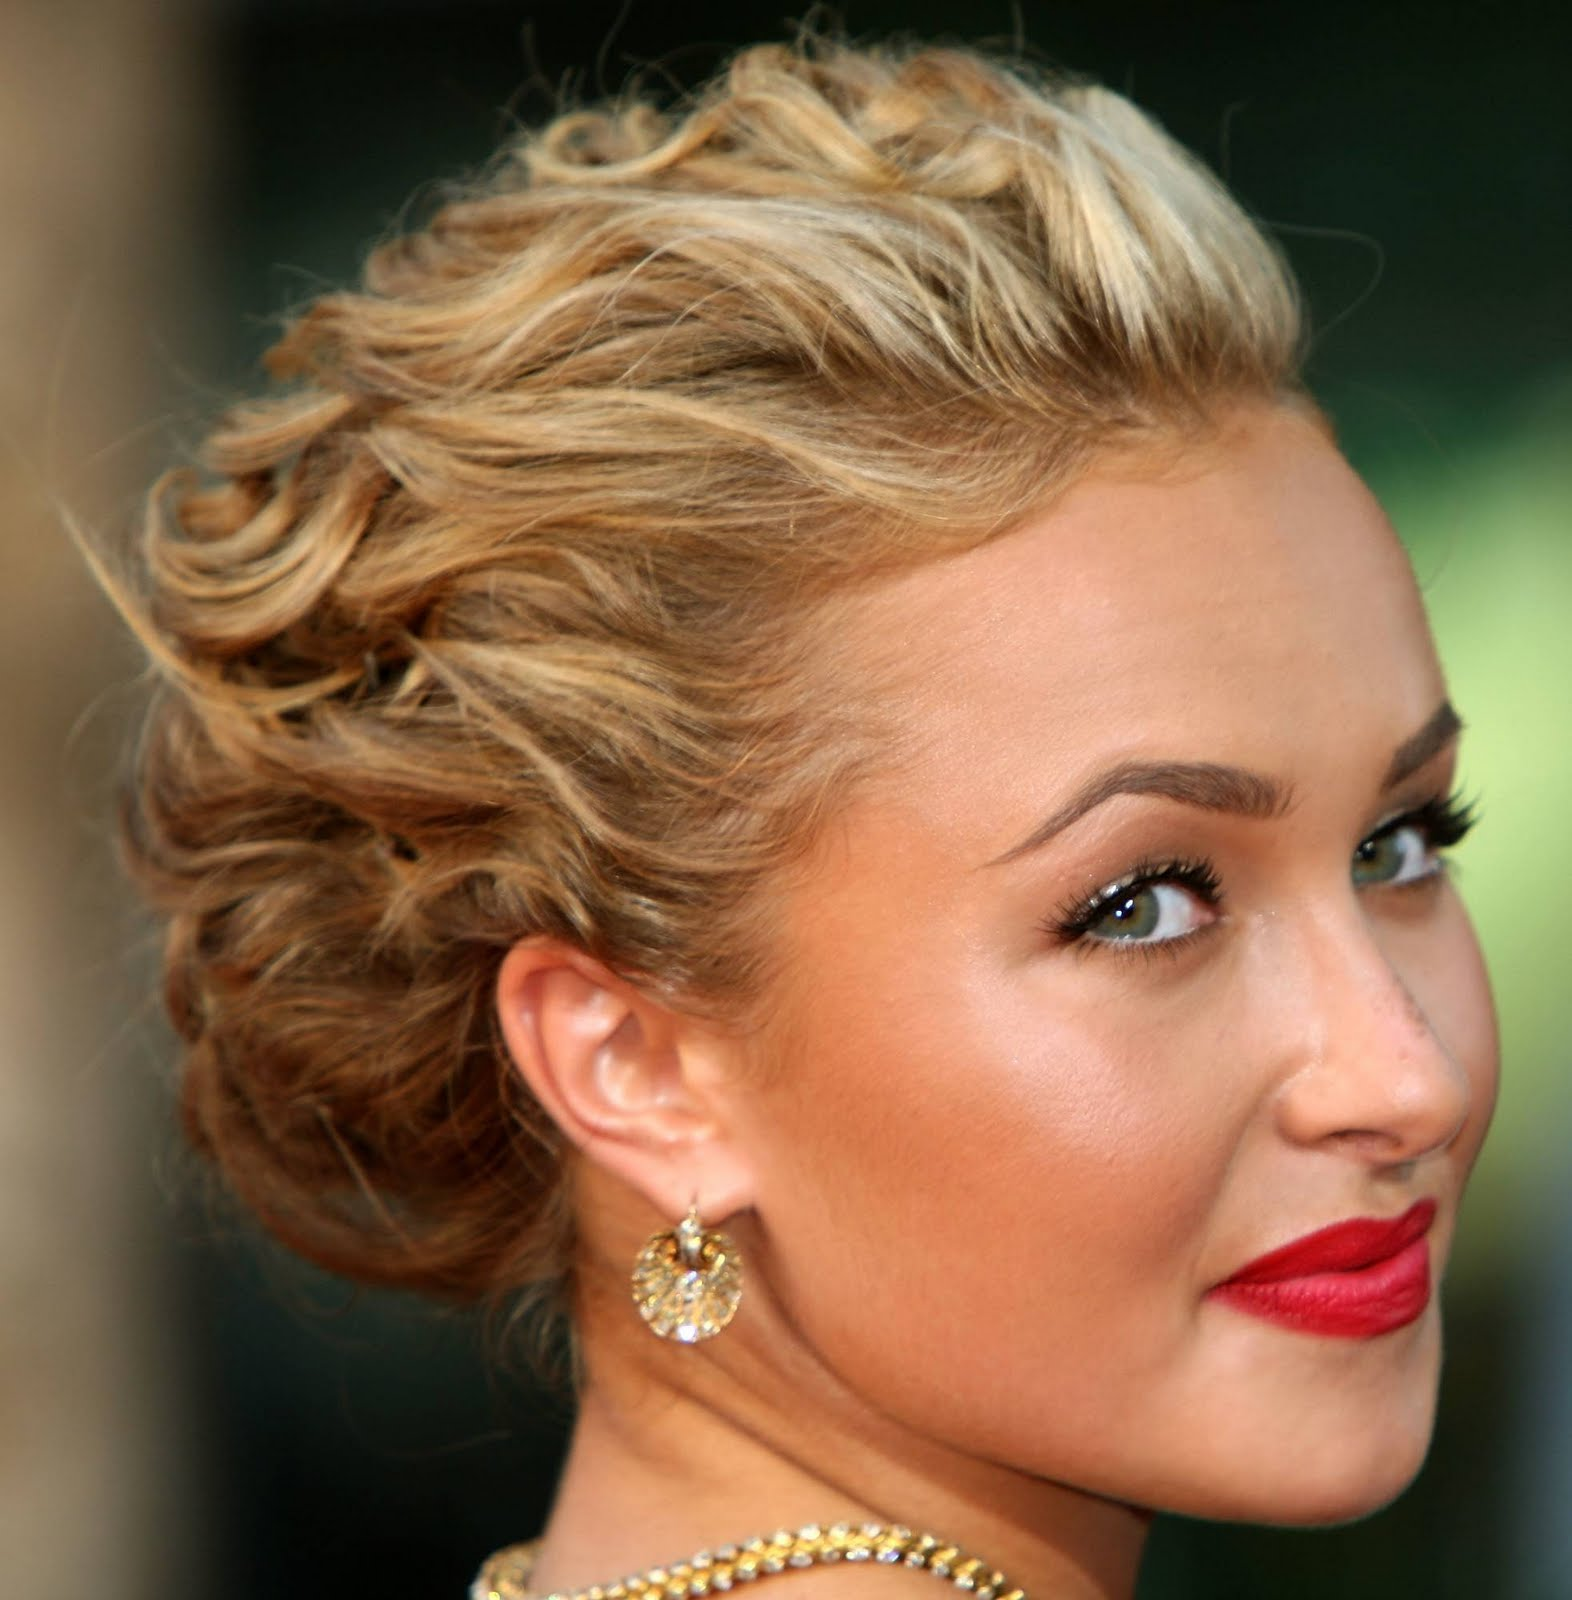 hairstyles popular 2012: Formal Prom Curly Updo Hairstyle ...